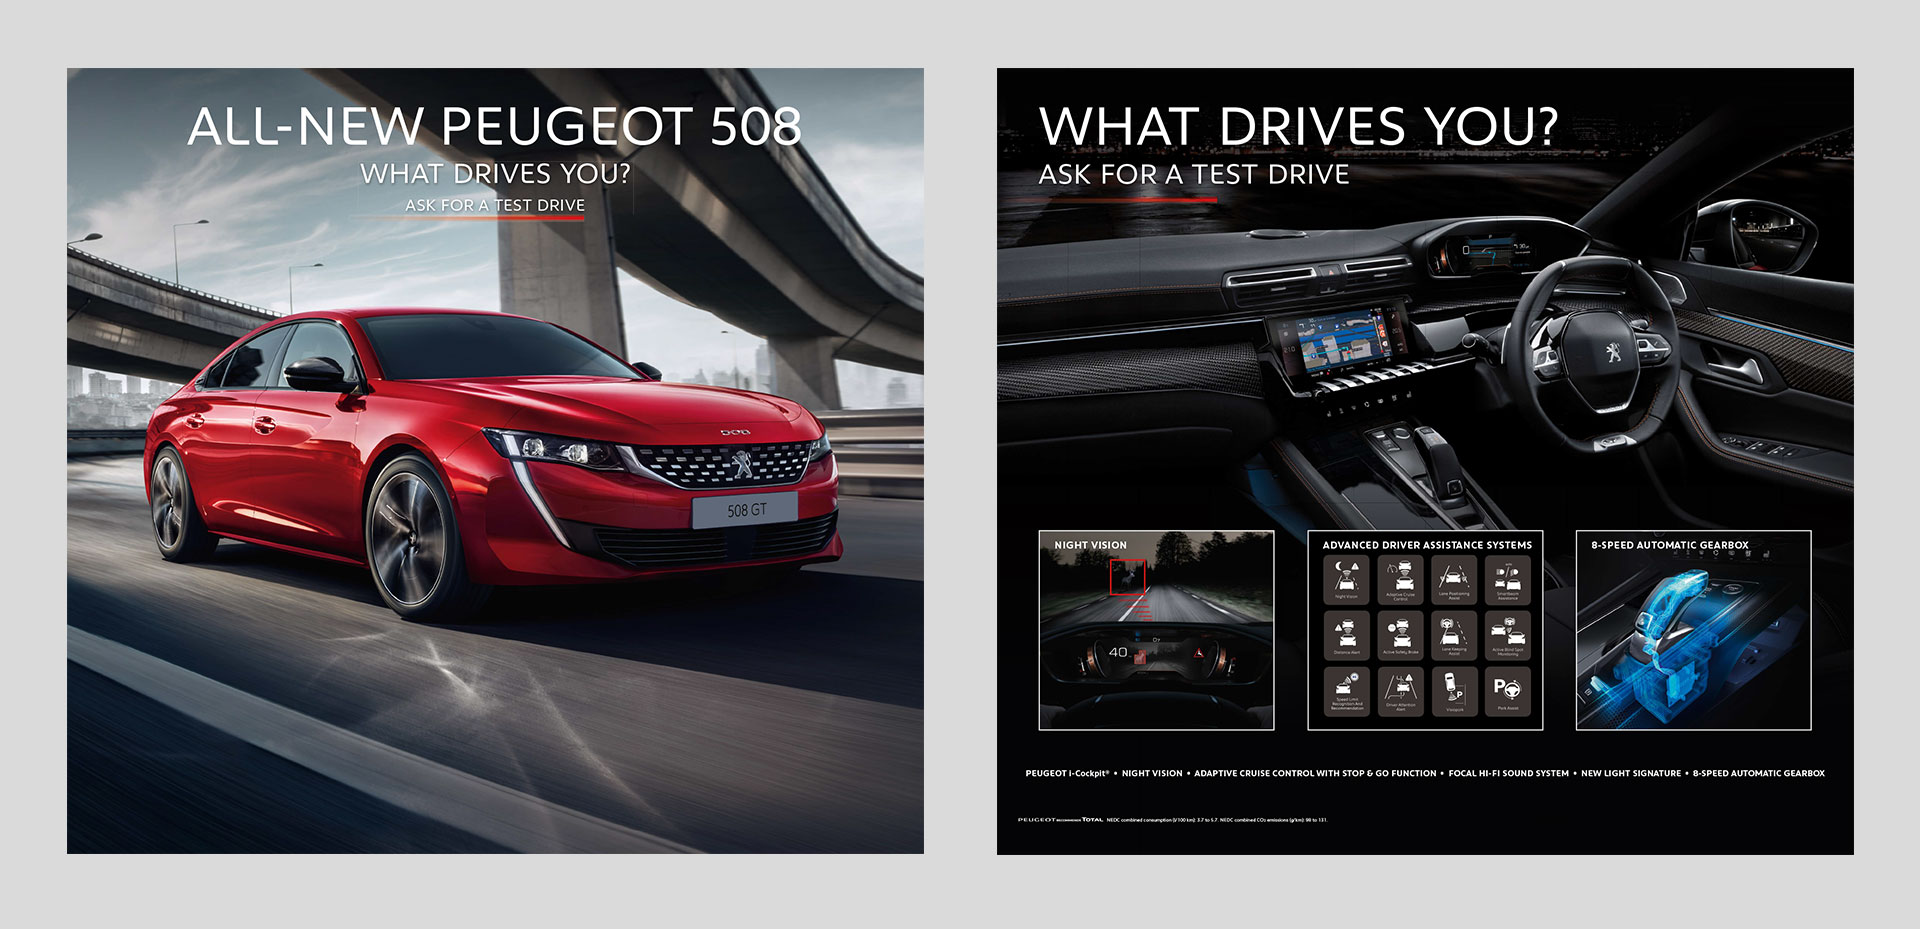 Peugeot Dealer Marketing Launch of the All-New PEUGEOT 508